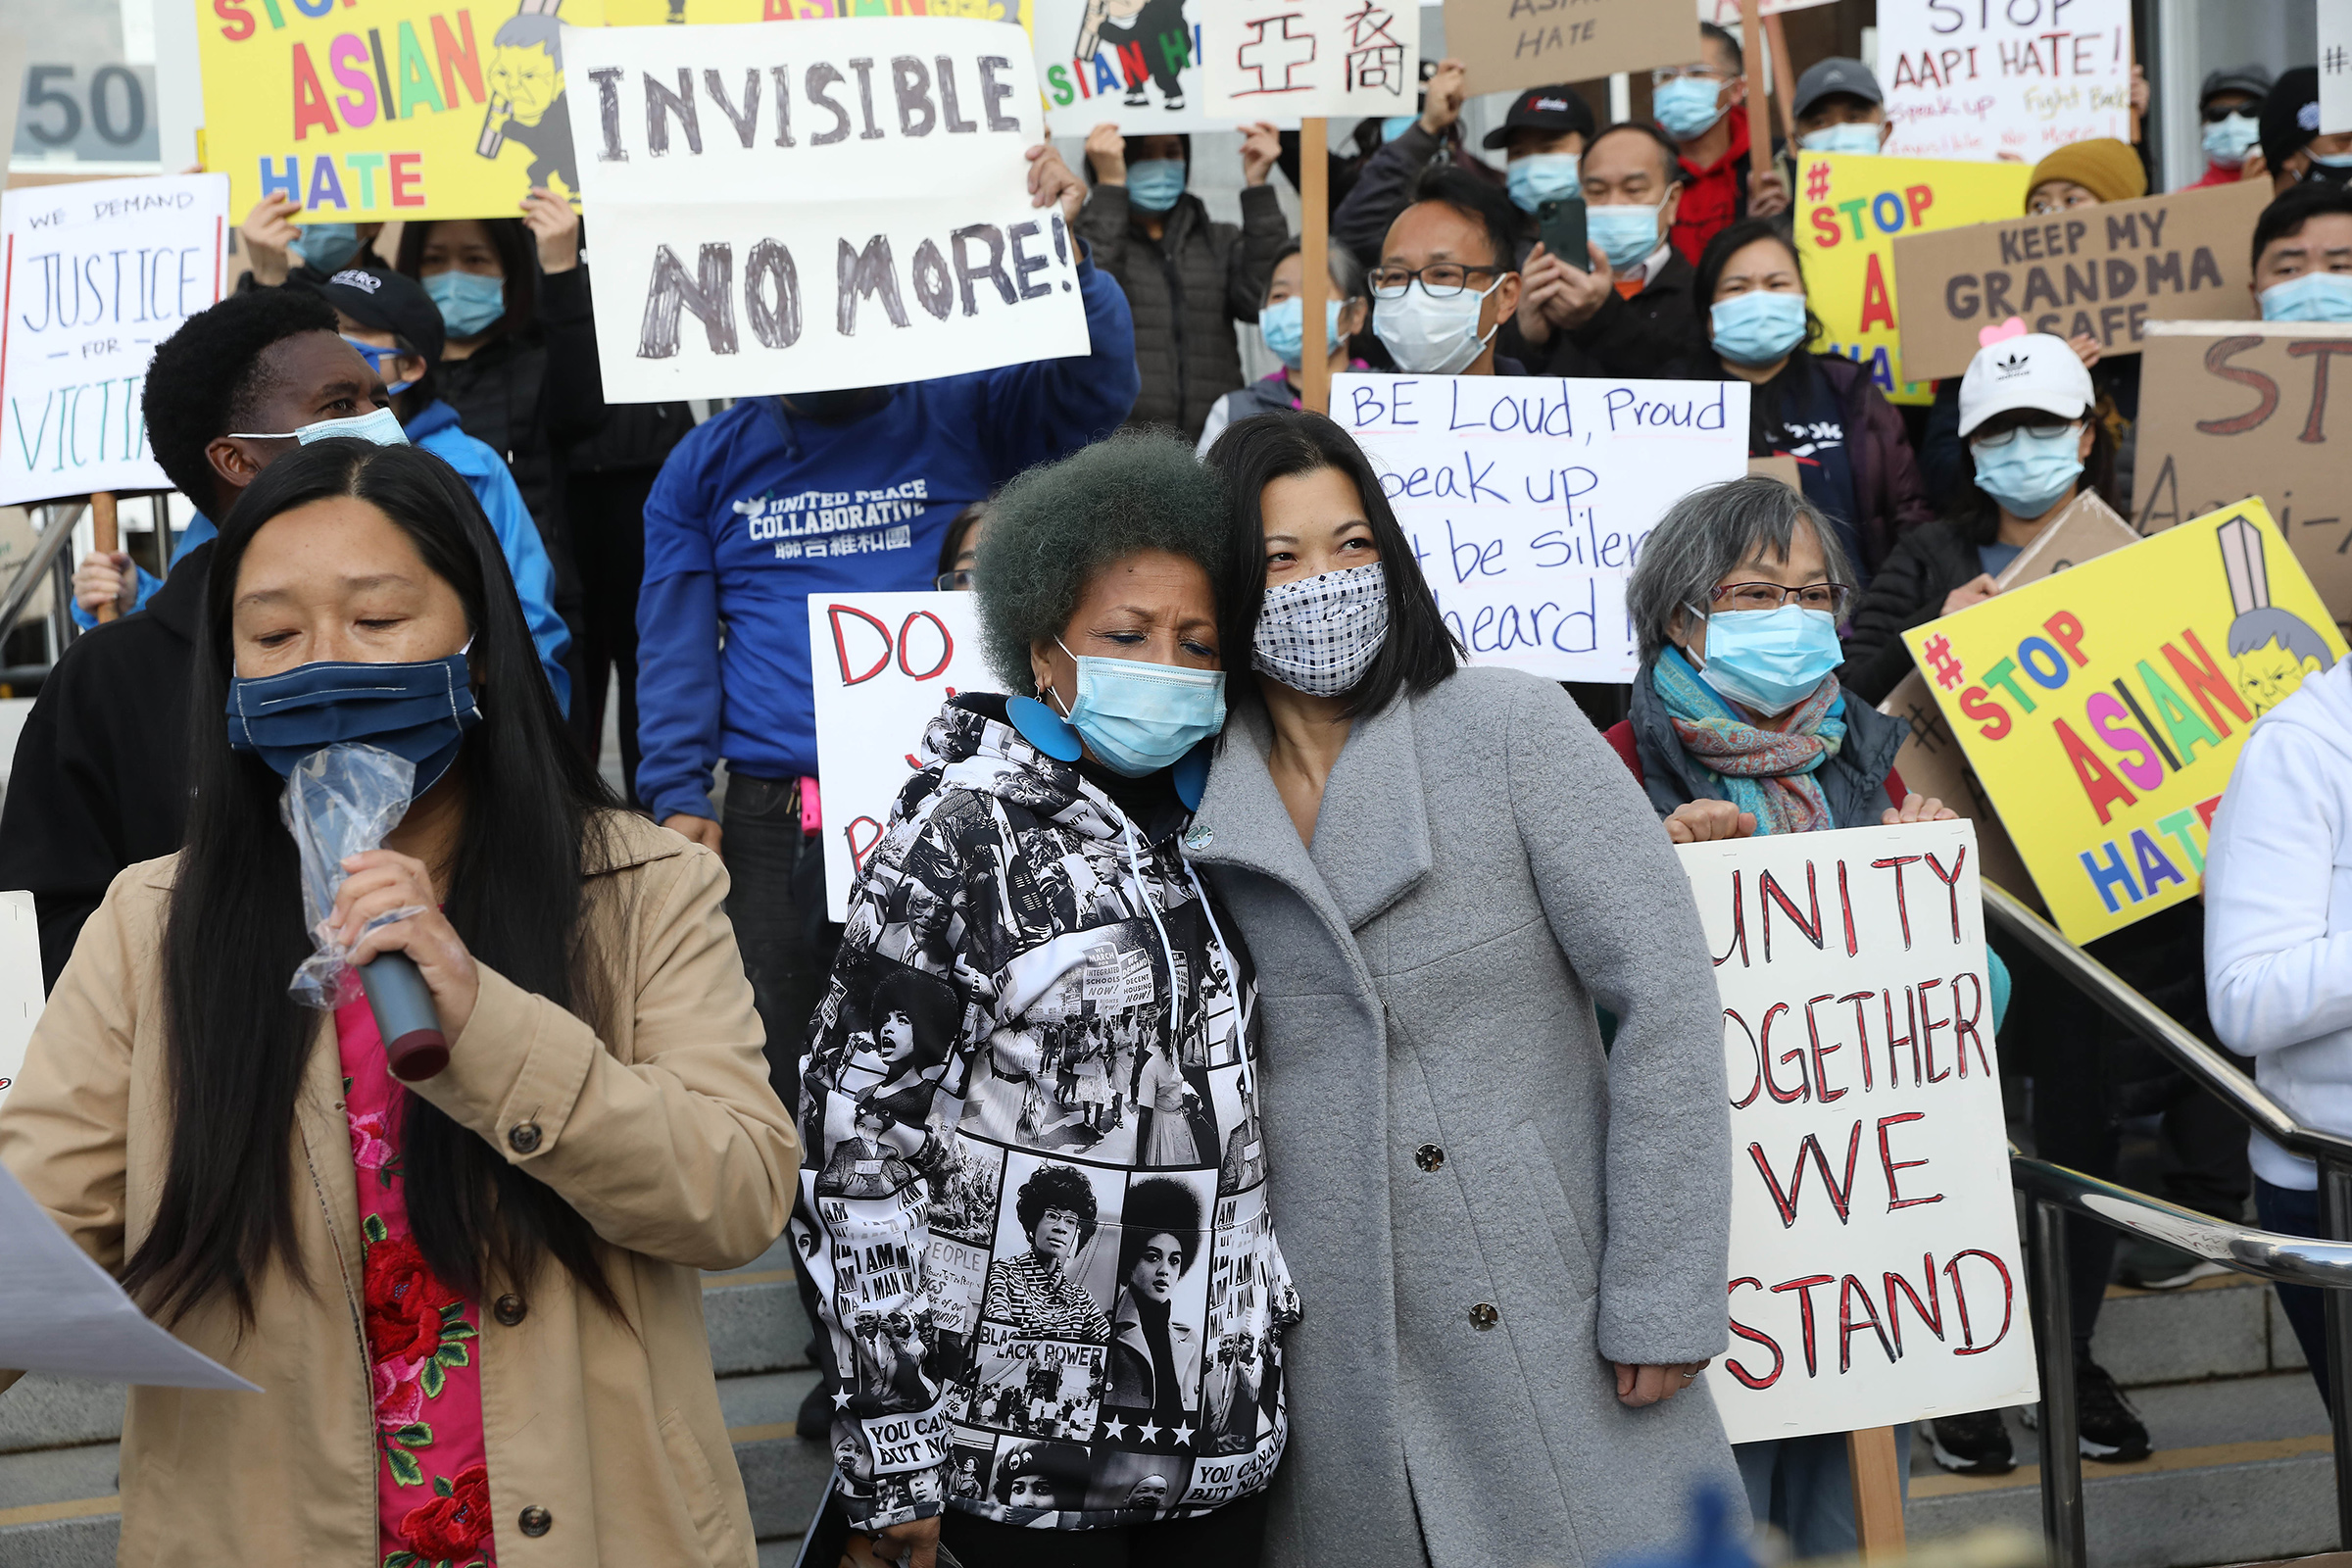 Mattie Scott (center, left to right), founder and Executive Director of Healing 4 Our Families & Our Nation and Nancy Tung, public safety advocate, hold each other as they rally with demonstrators rallying in front of the Hall of Justice as they demand justice for Vicha Ratanapakdee on March 22 in San Francisco